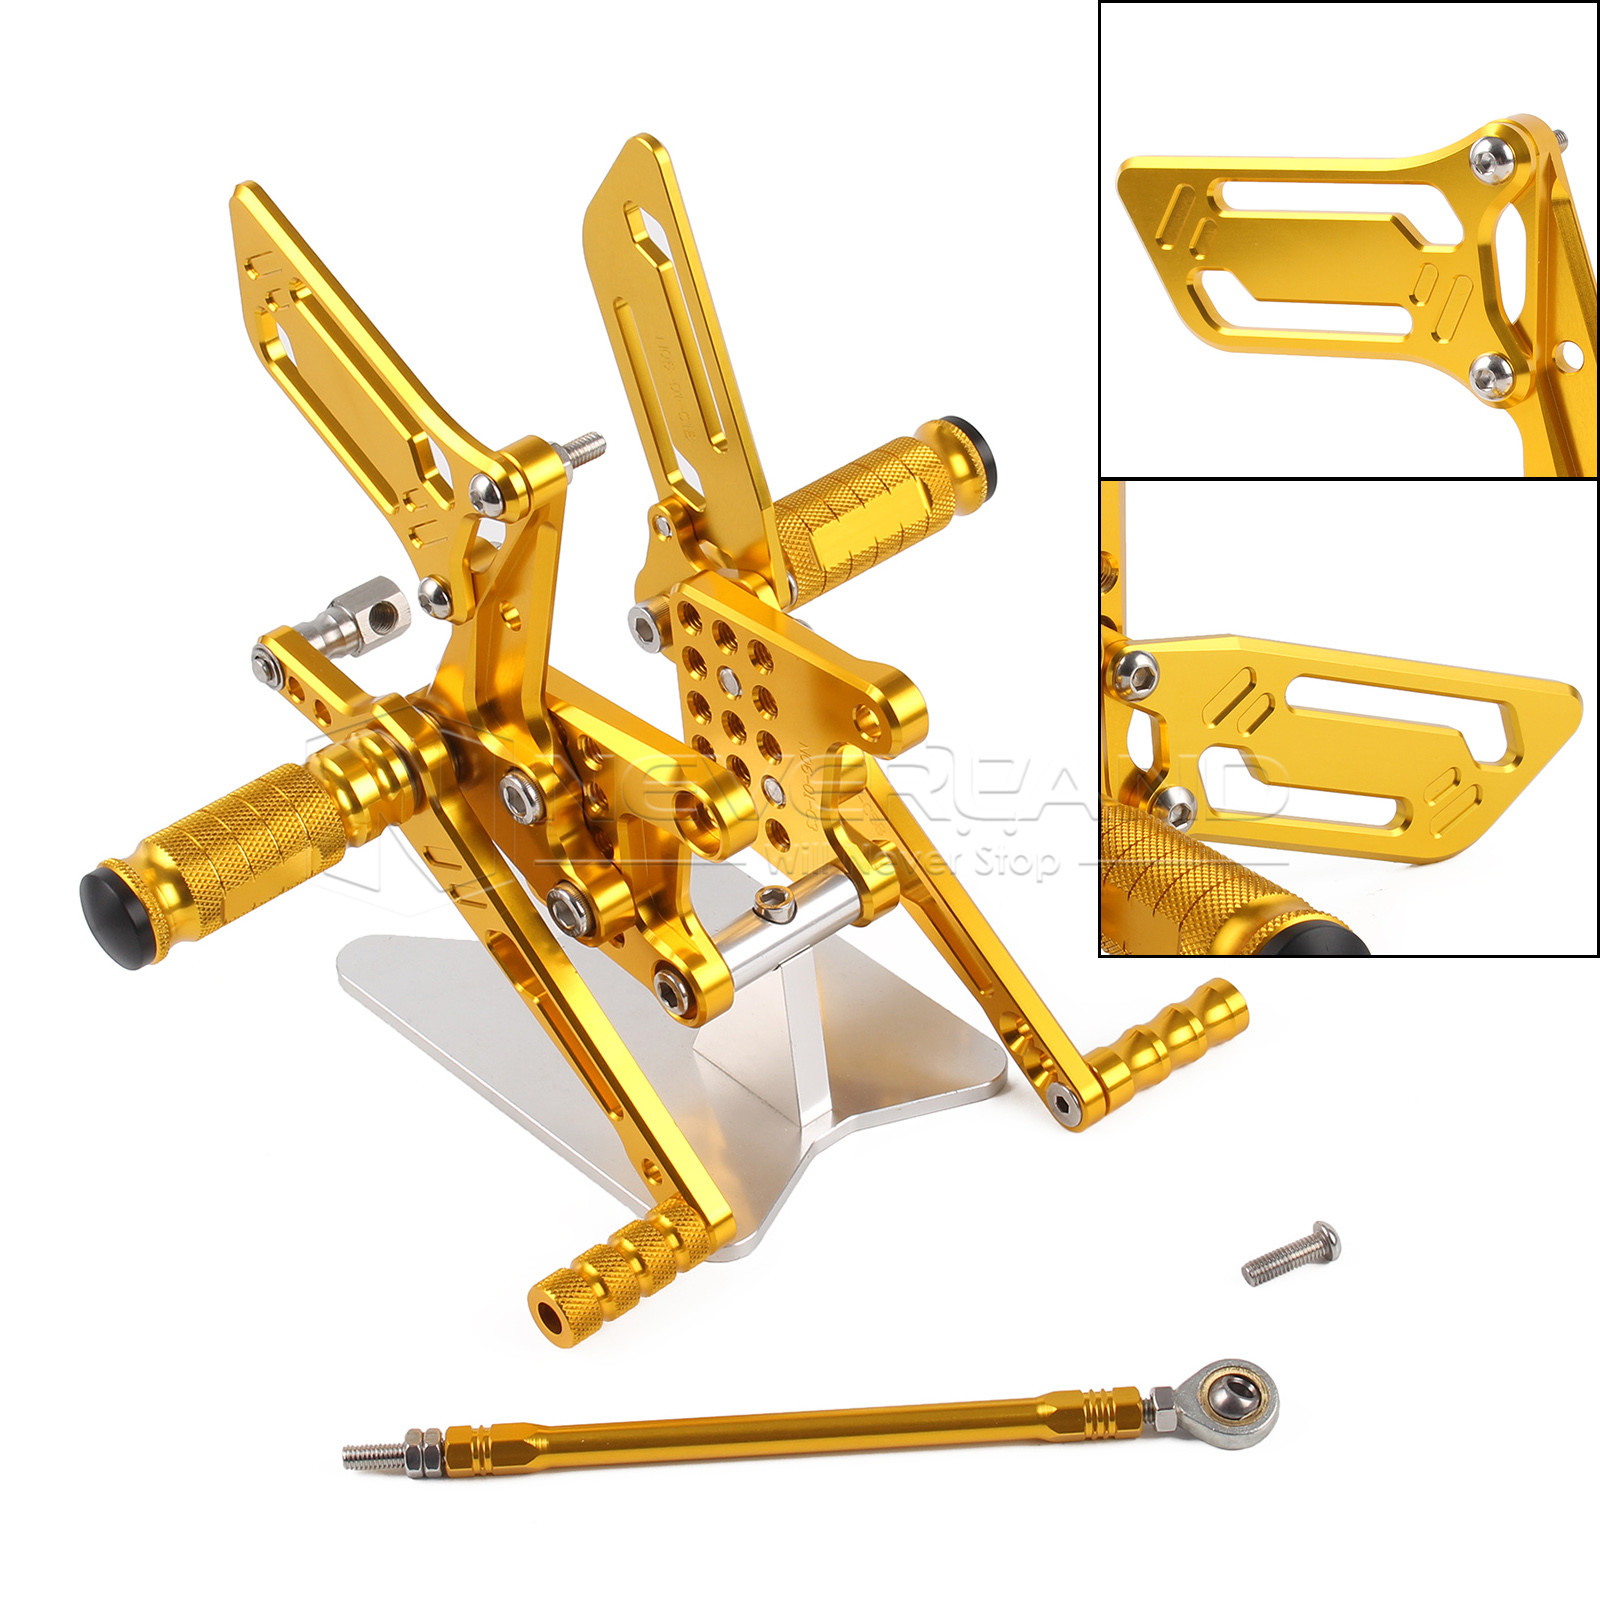 CNC Adjustable Rear Sets Rearset Footrest Foot Rest Pegs For Suzuki GSXR600 GSXR750 GSXR1000 GSXR 600 750 1000 SV650 SV650S management and users participation in low cost flat